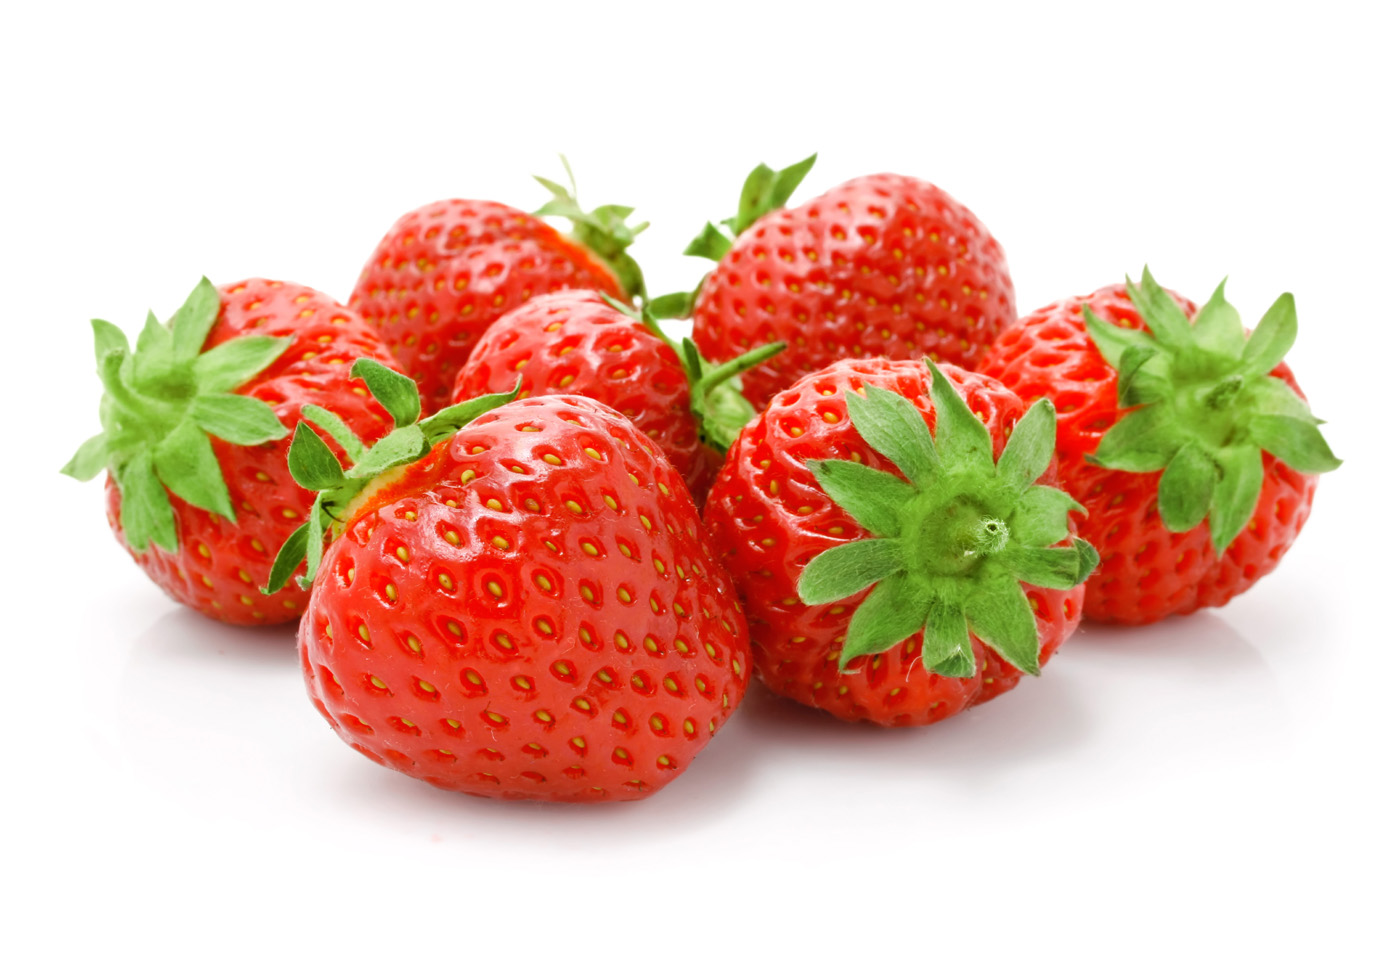 Strawberries 30825